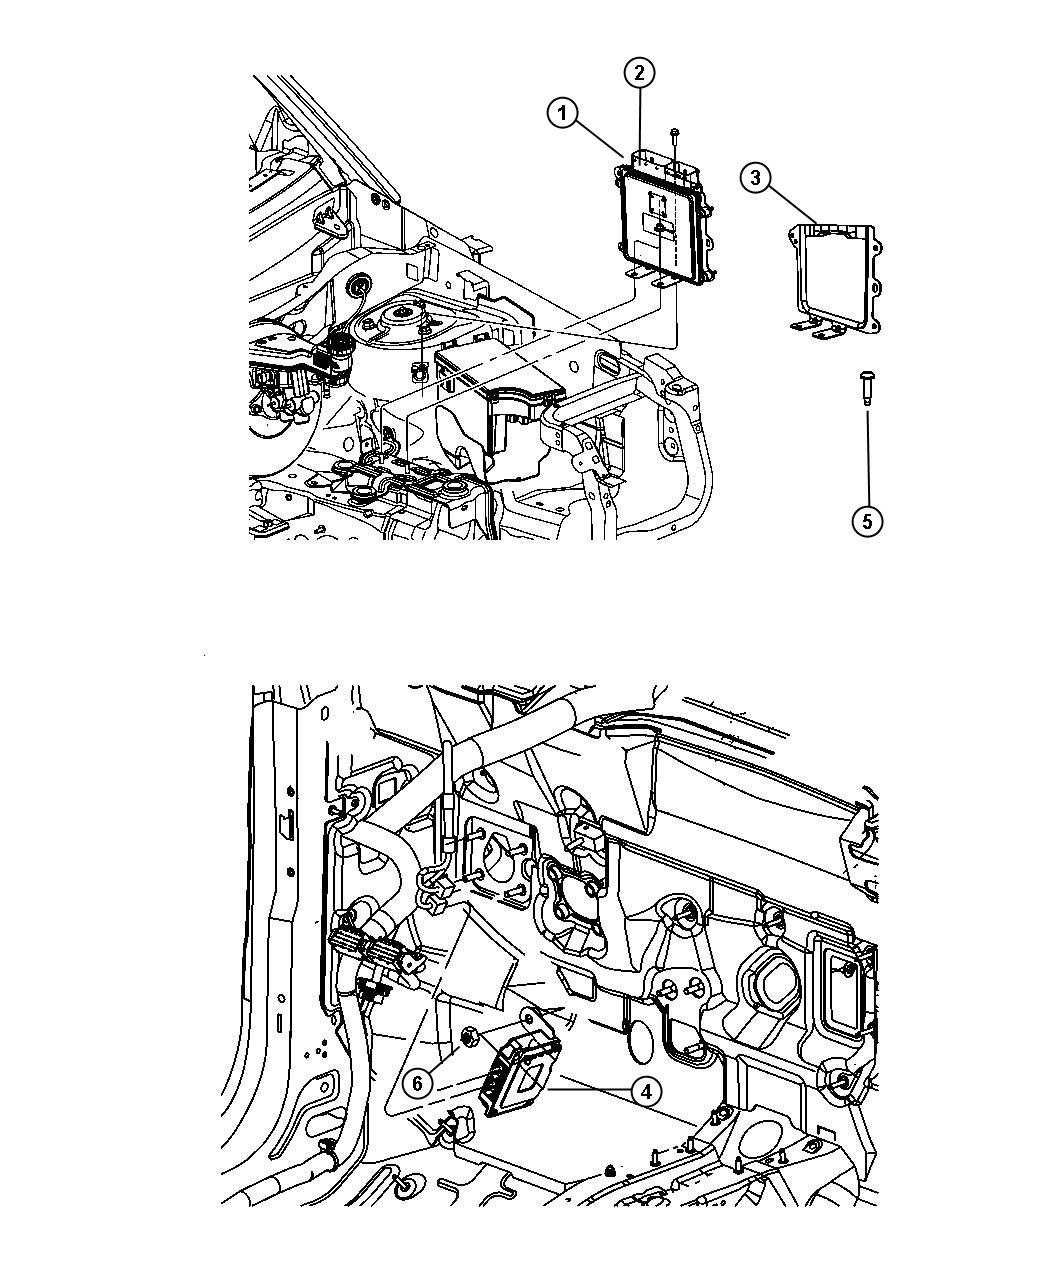 Jeep Patriot Modules Engine Compartment